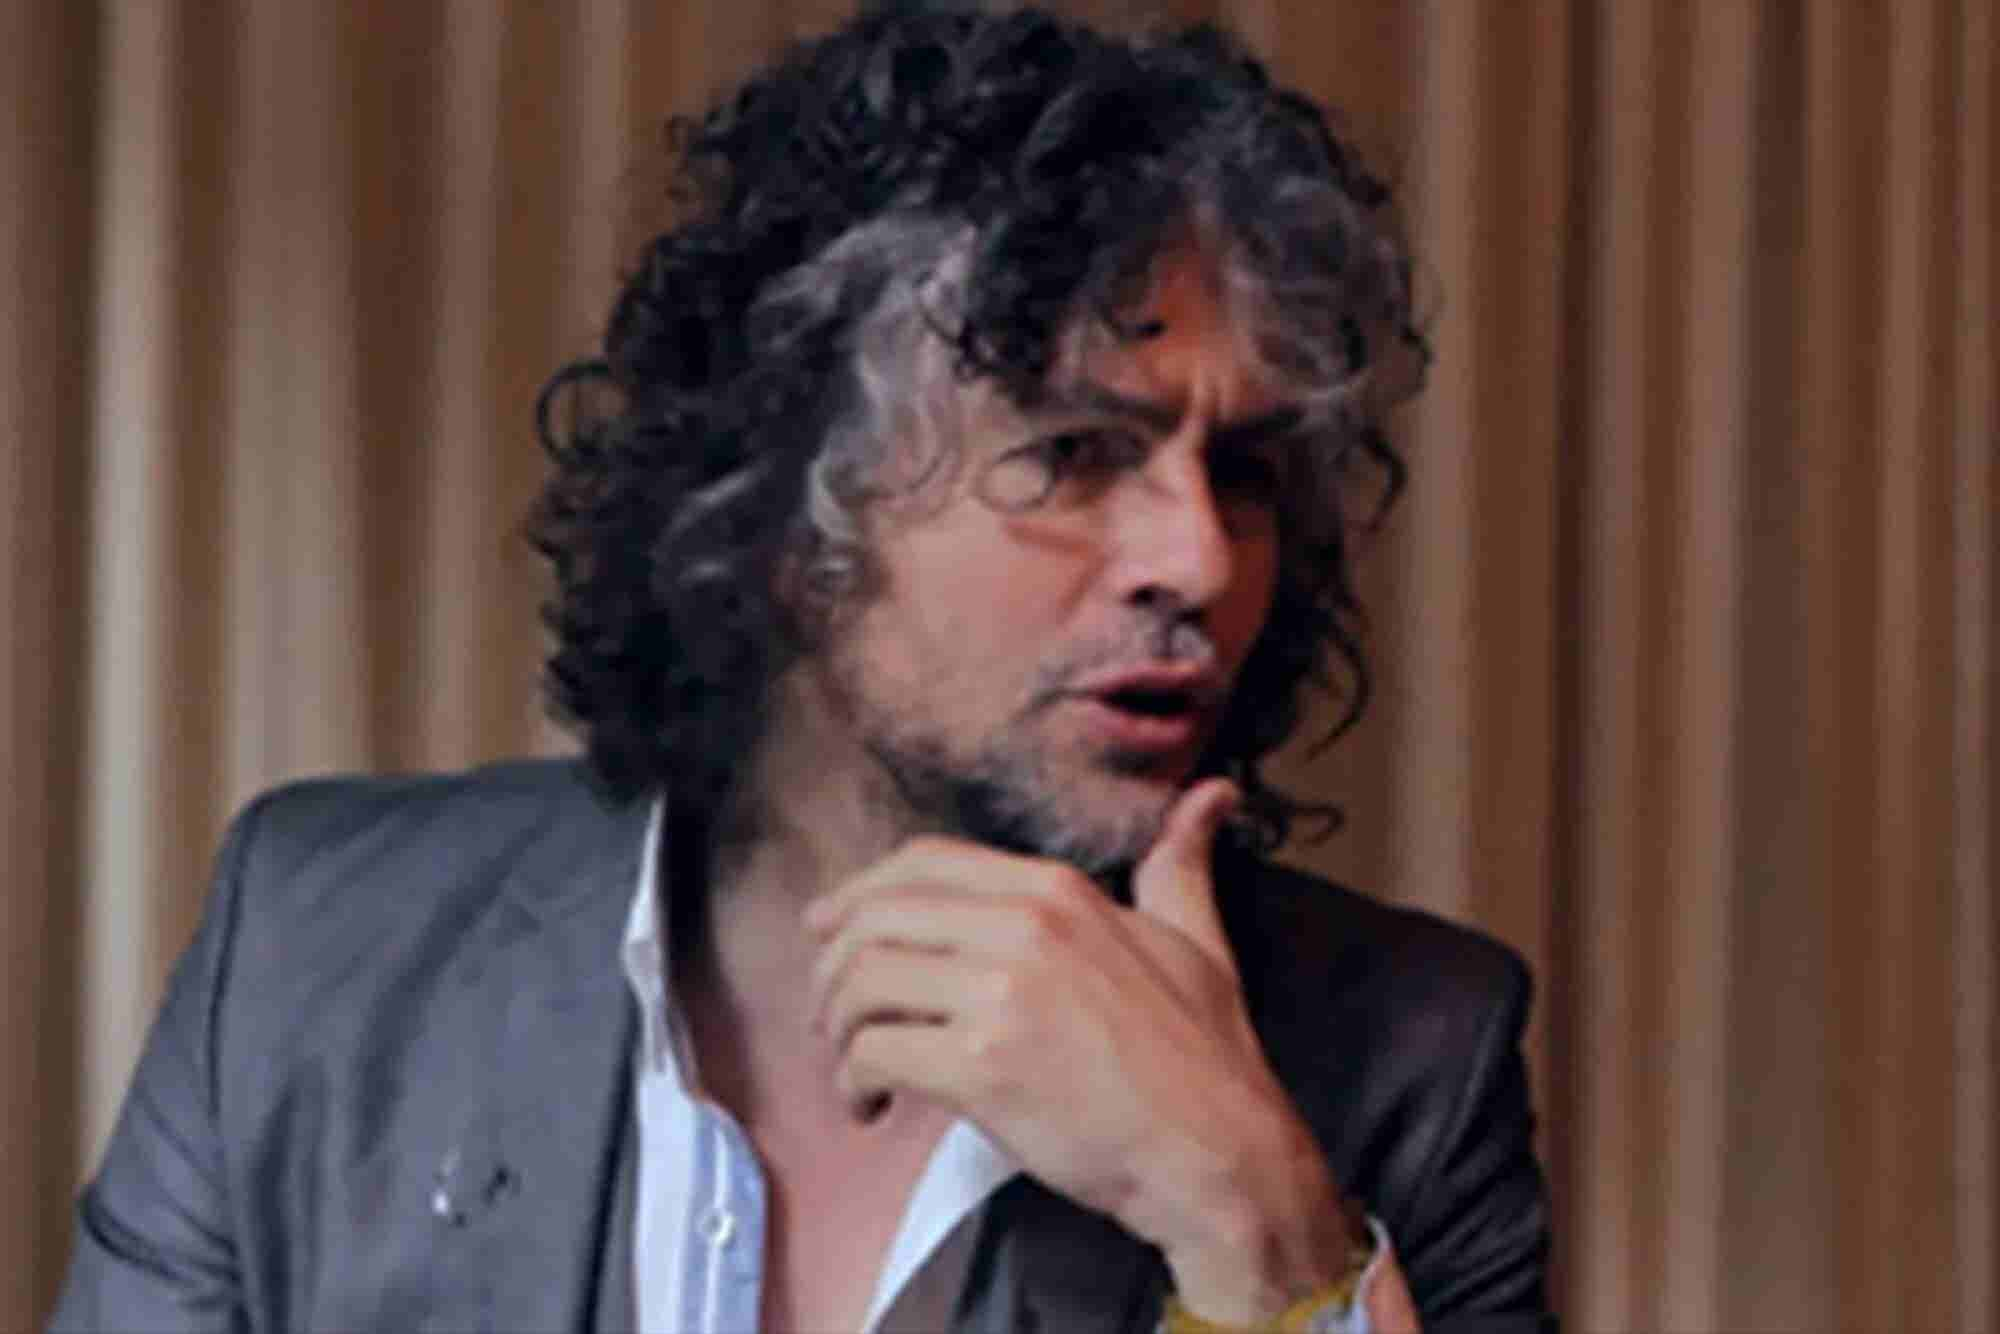 Wayne Coyne of the Flaming Lips on Reinvention